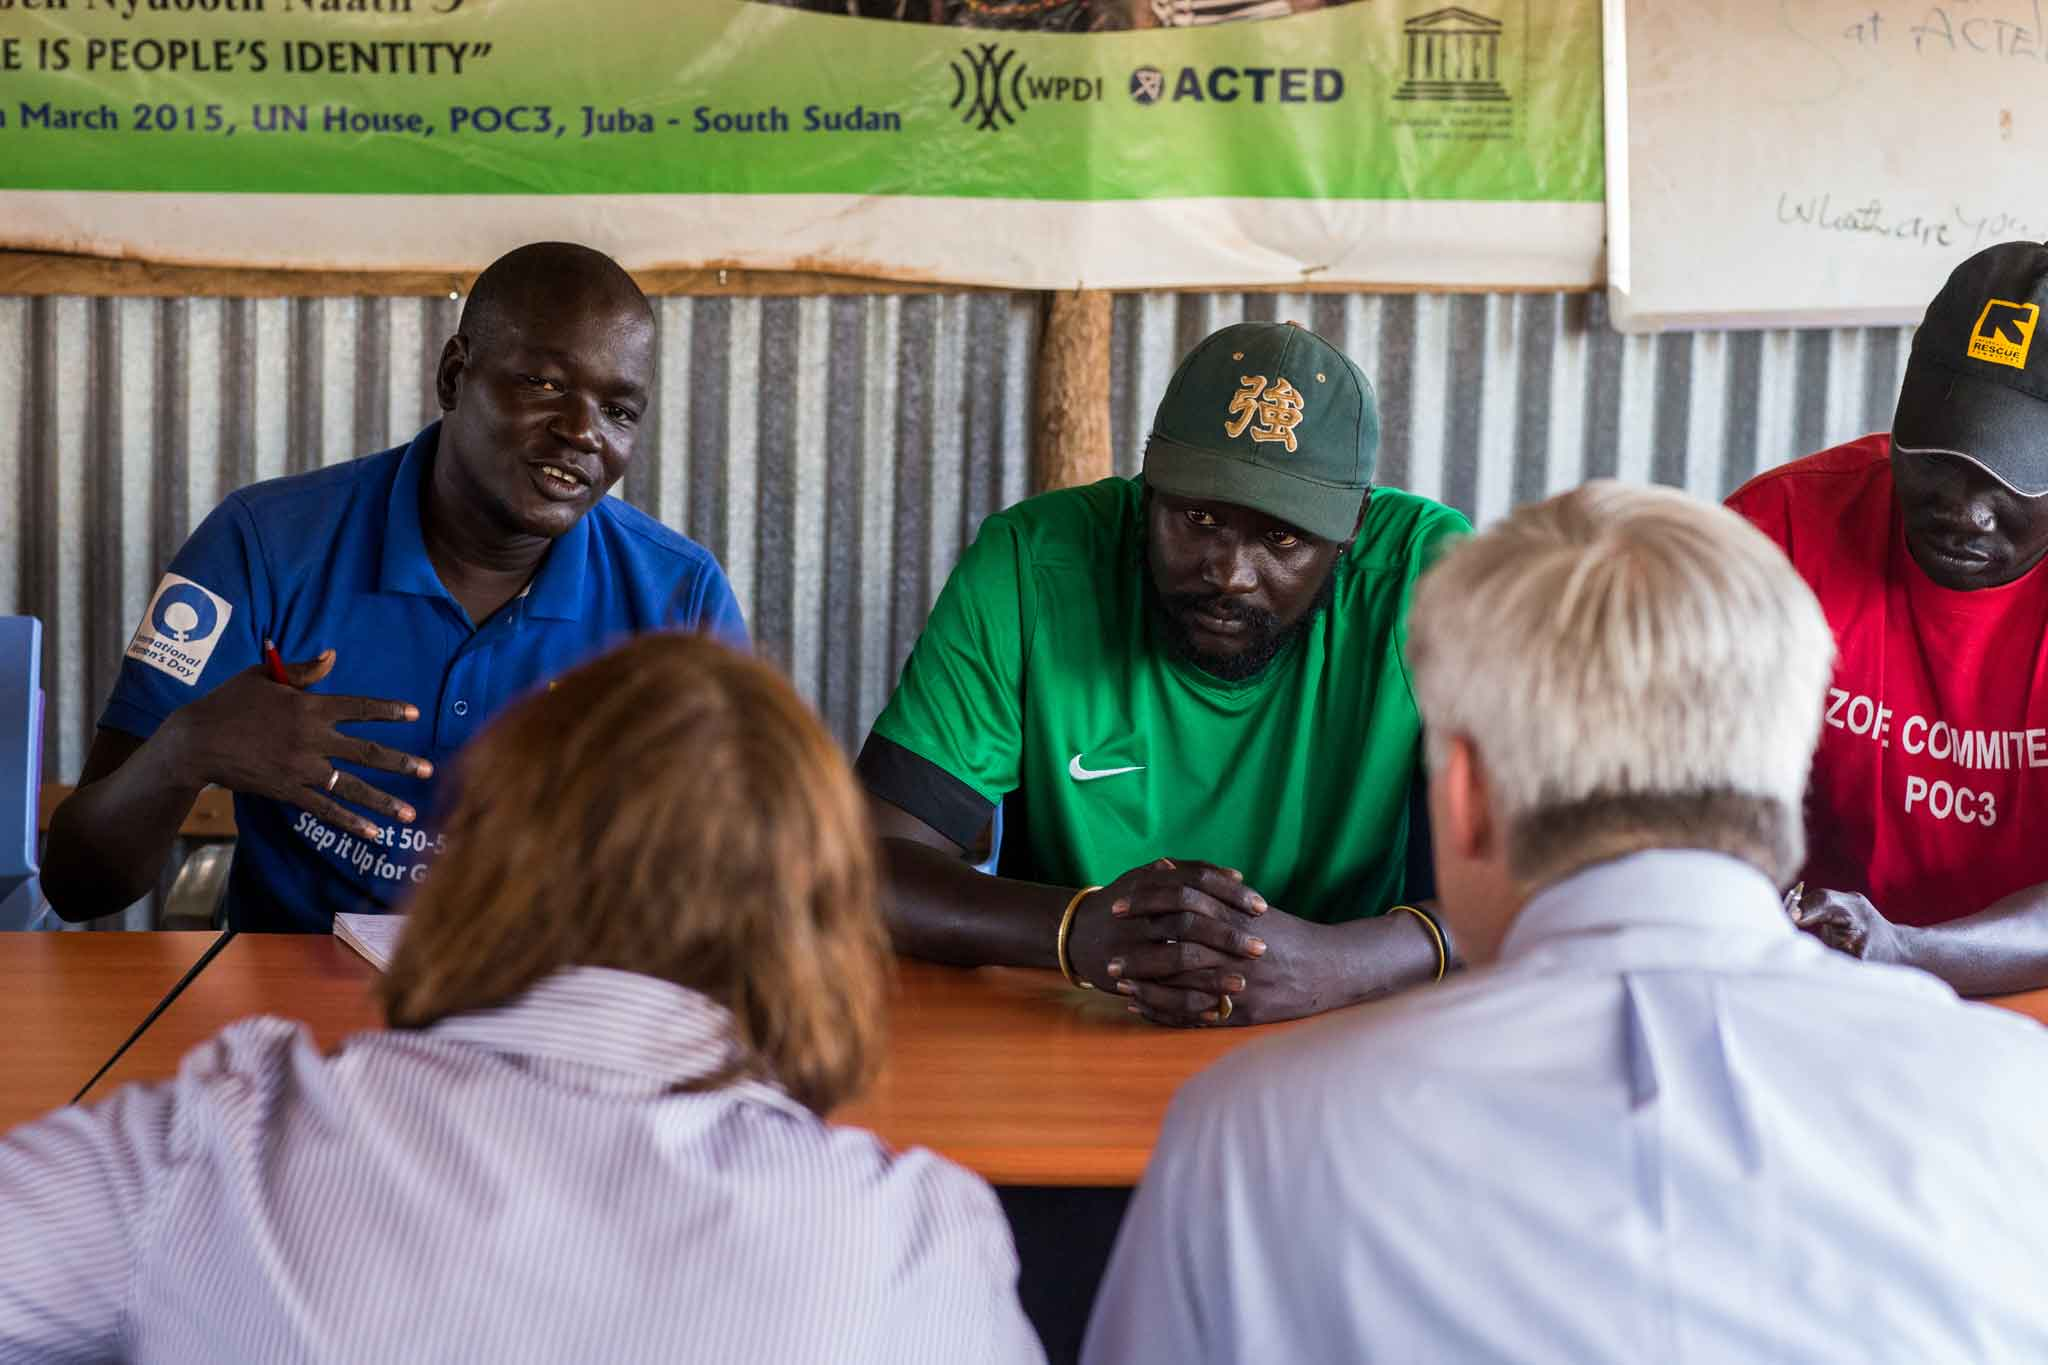 A US delegation visited Protection of Civilians sites in Juba, South Sudan on May 27, 2016, meeting with camp leaders and women's representatives. The delegation included, among others, the US Ambassador to South Sudan and the USAID Mission Director in South Sudan.